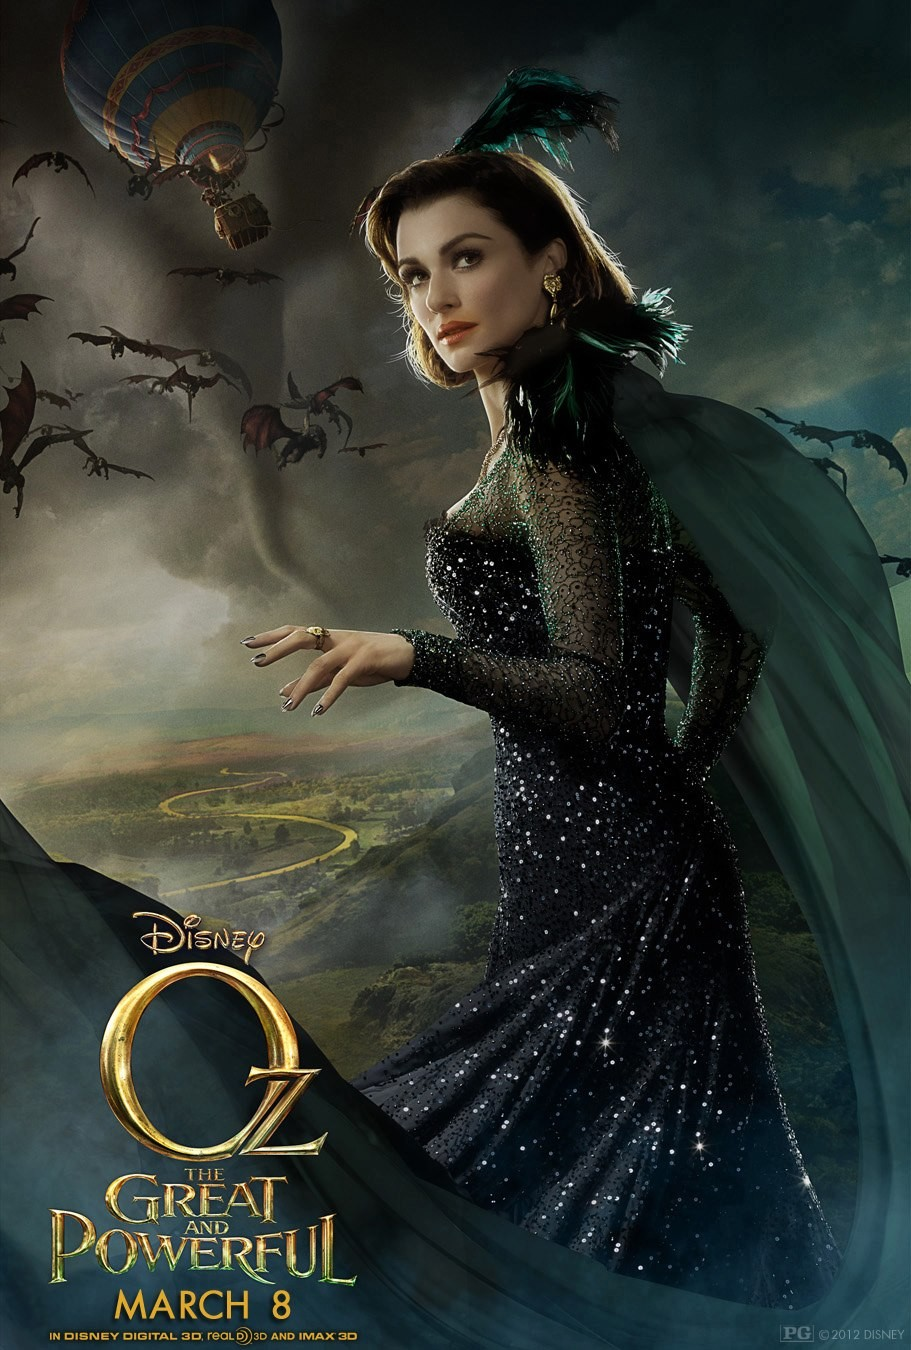 http://1.bp.blogspot.com/-xQ3x40AoEnY/UQPp0HHkLSI/AAAAAAABAHw/I4XXi5yrwrc/s1600/Movie-Poster-THE-OZ-GREAT-AND-POWERFUL-Rachel-Weisz-Evanora.jpg